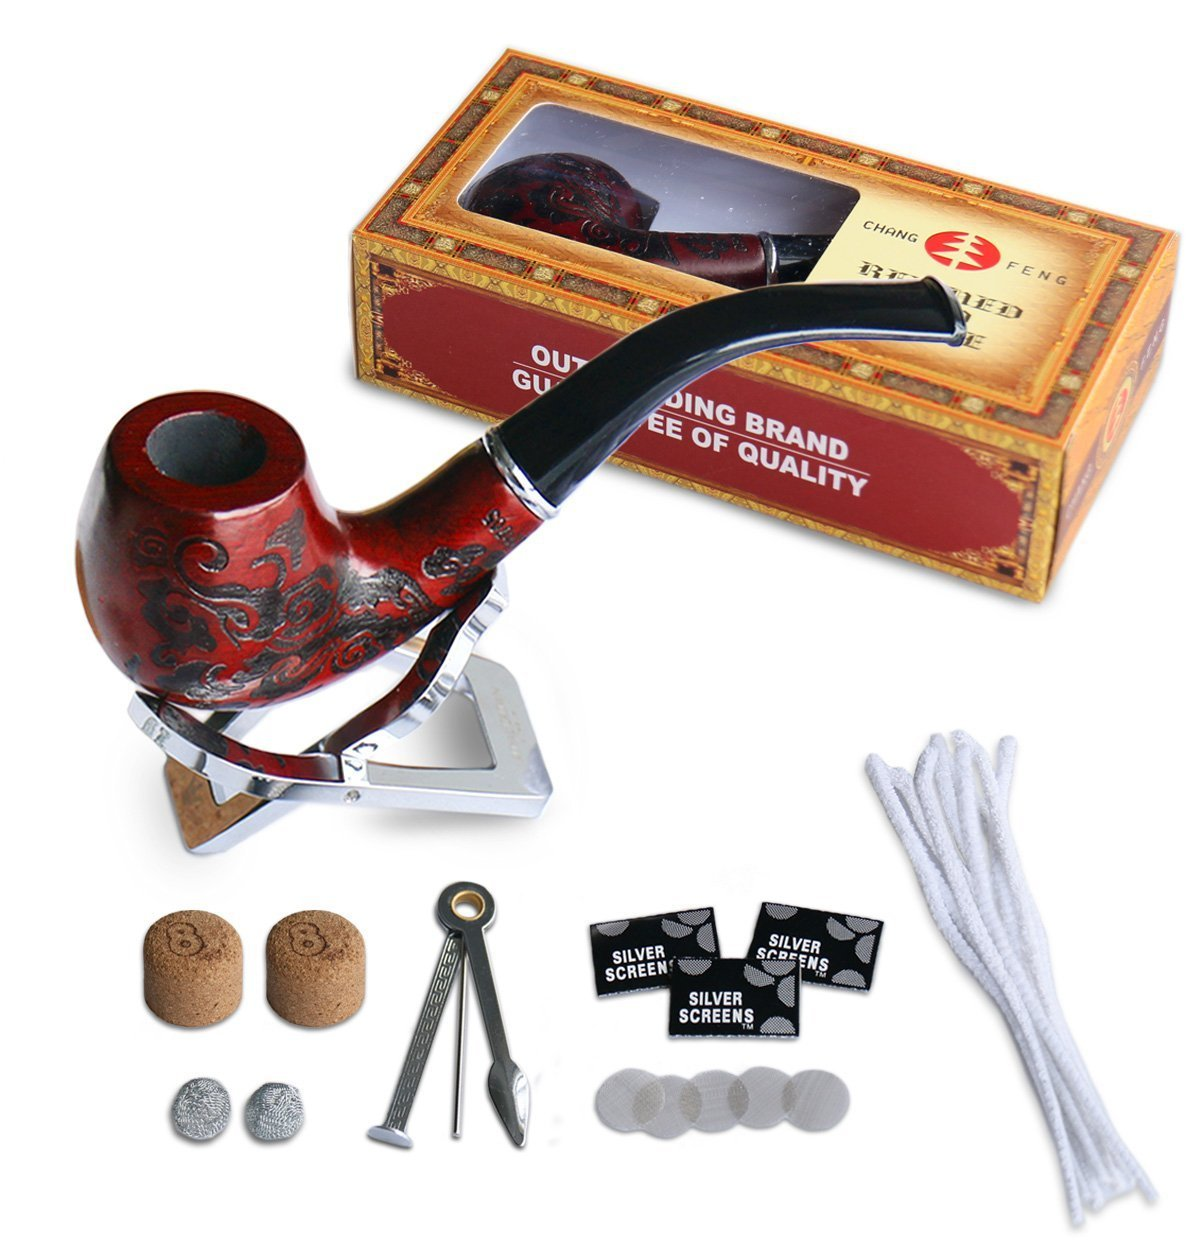 Joyoldelf Wooden Cigarette Tobacco Smoking Pipe with 3-in-1 Pipe Scraper + 2 Cork Knockers + 10 Pipe Cleaners + 2 Metal Screen Percolator Leach Nets + 3 Packs of 5 Pipe Screens + Pipe Holder by Joyoldelf